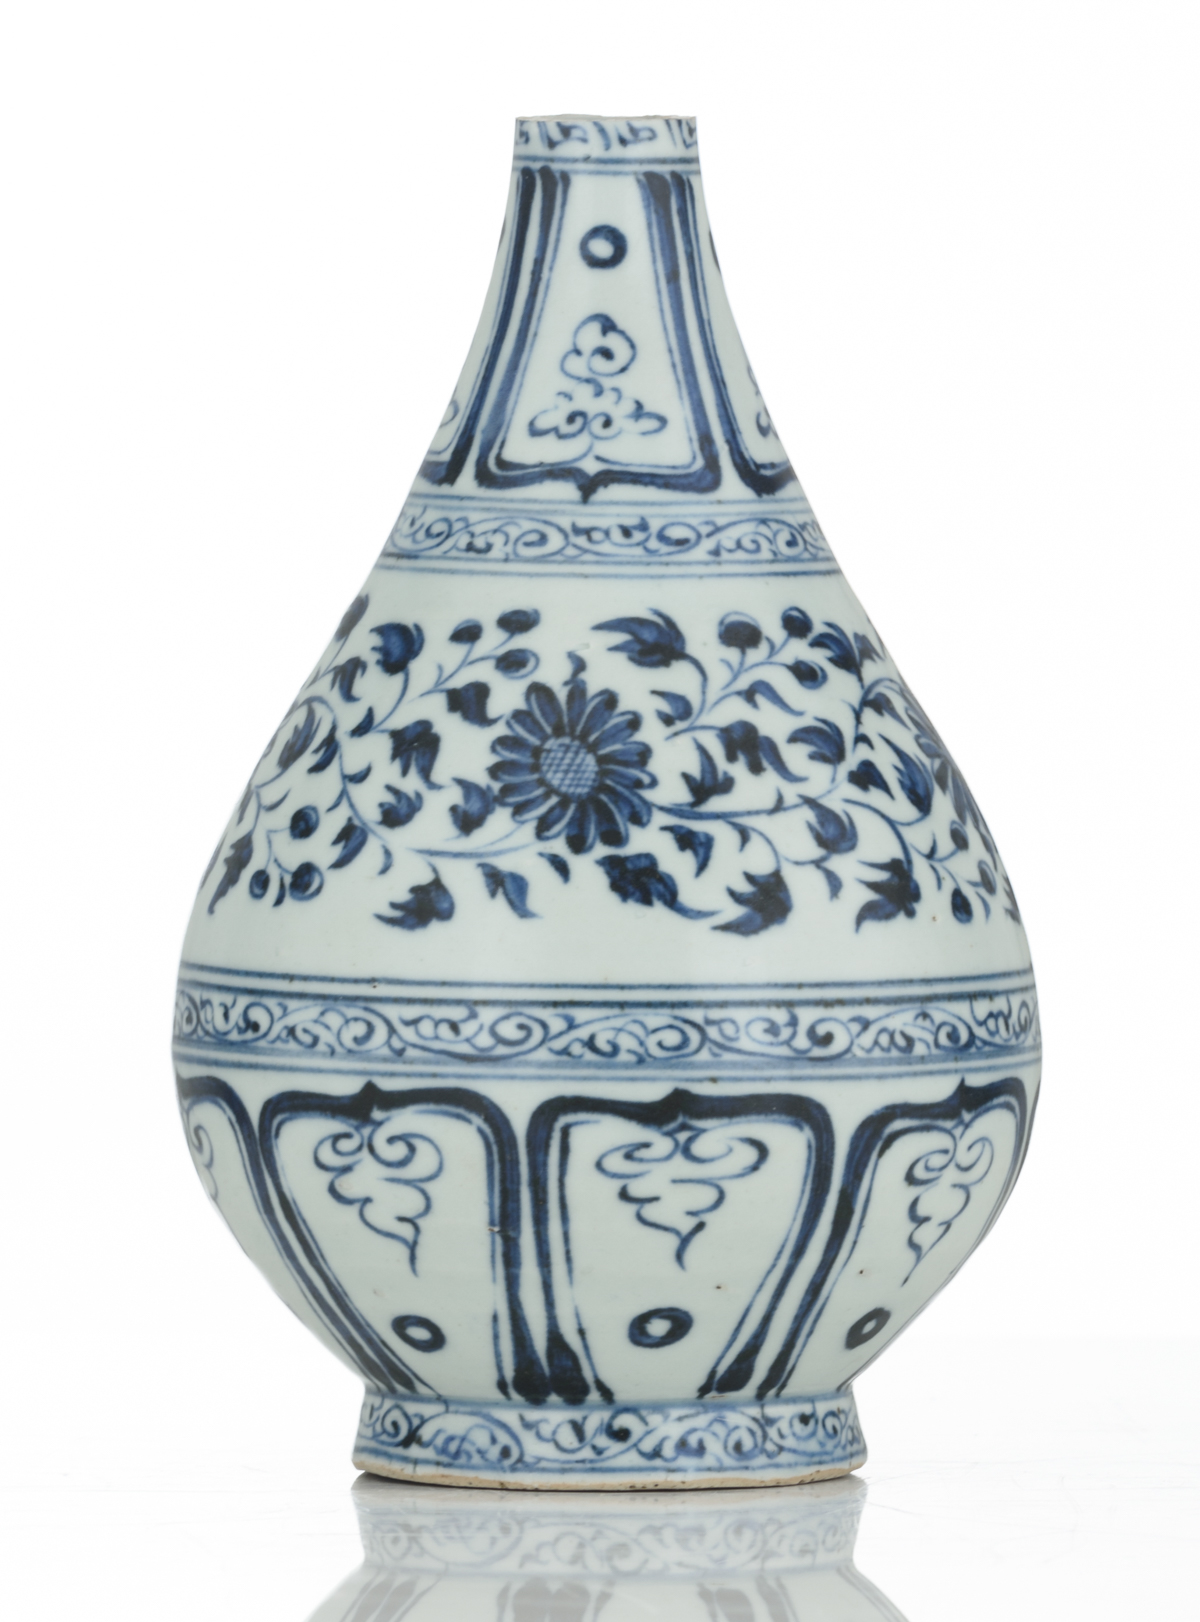 A Chinese blue and white floral decorated Ming type bottle vase, 17thC, H 21,5 cm - Image 4 of 6